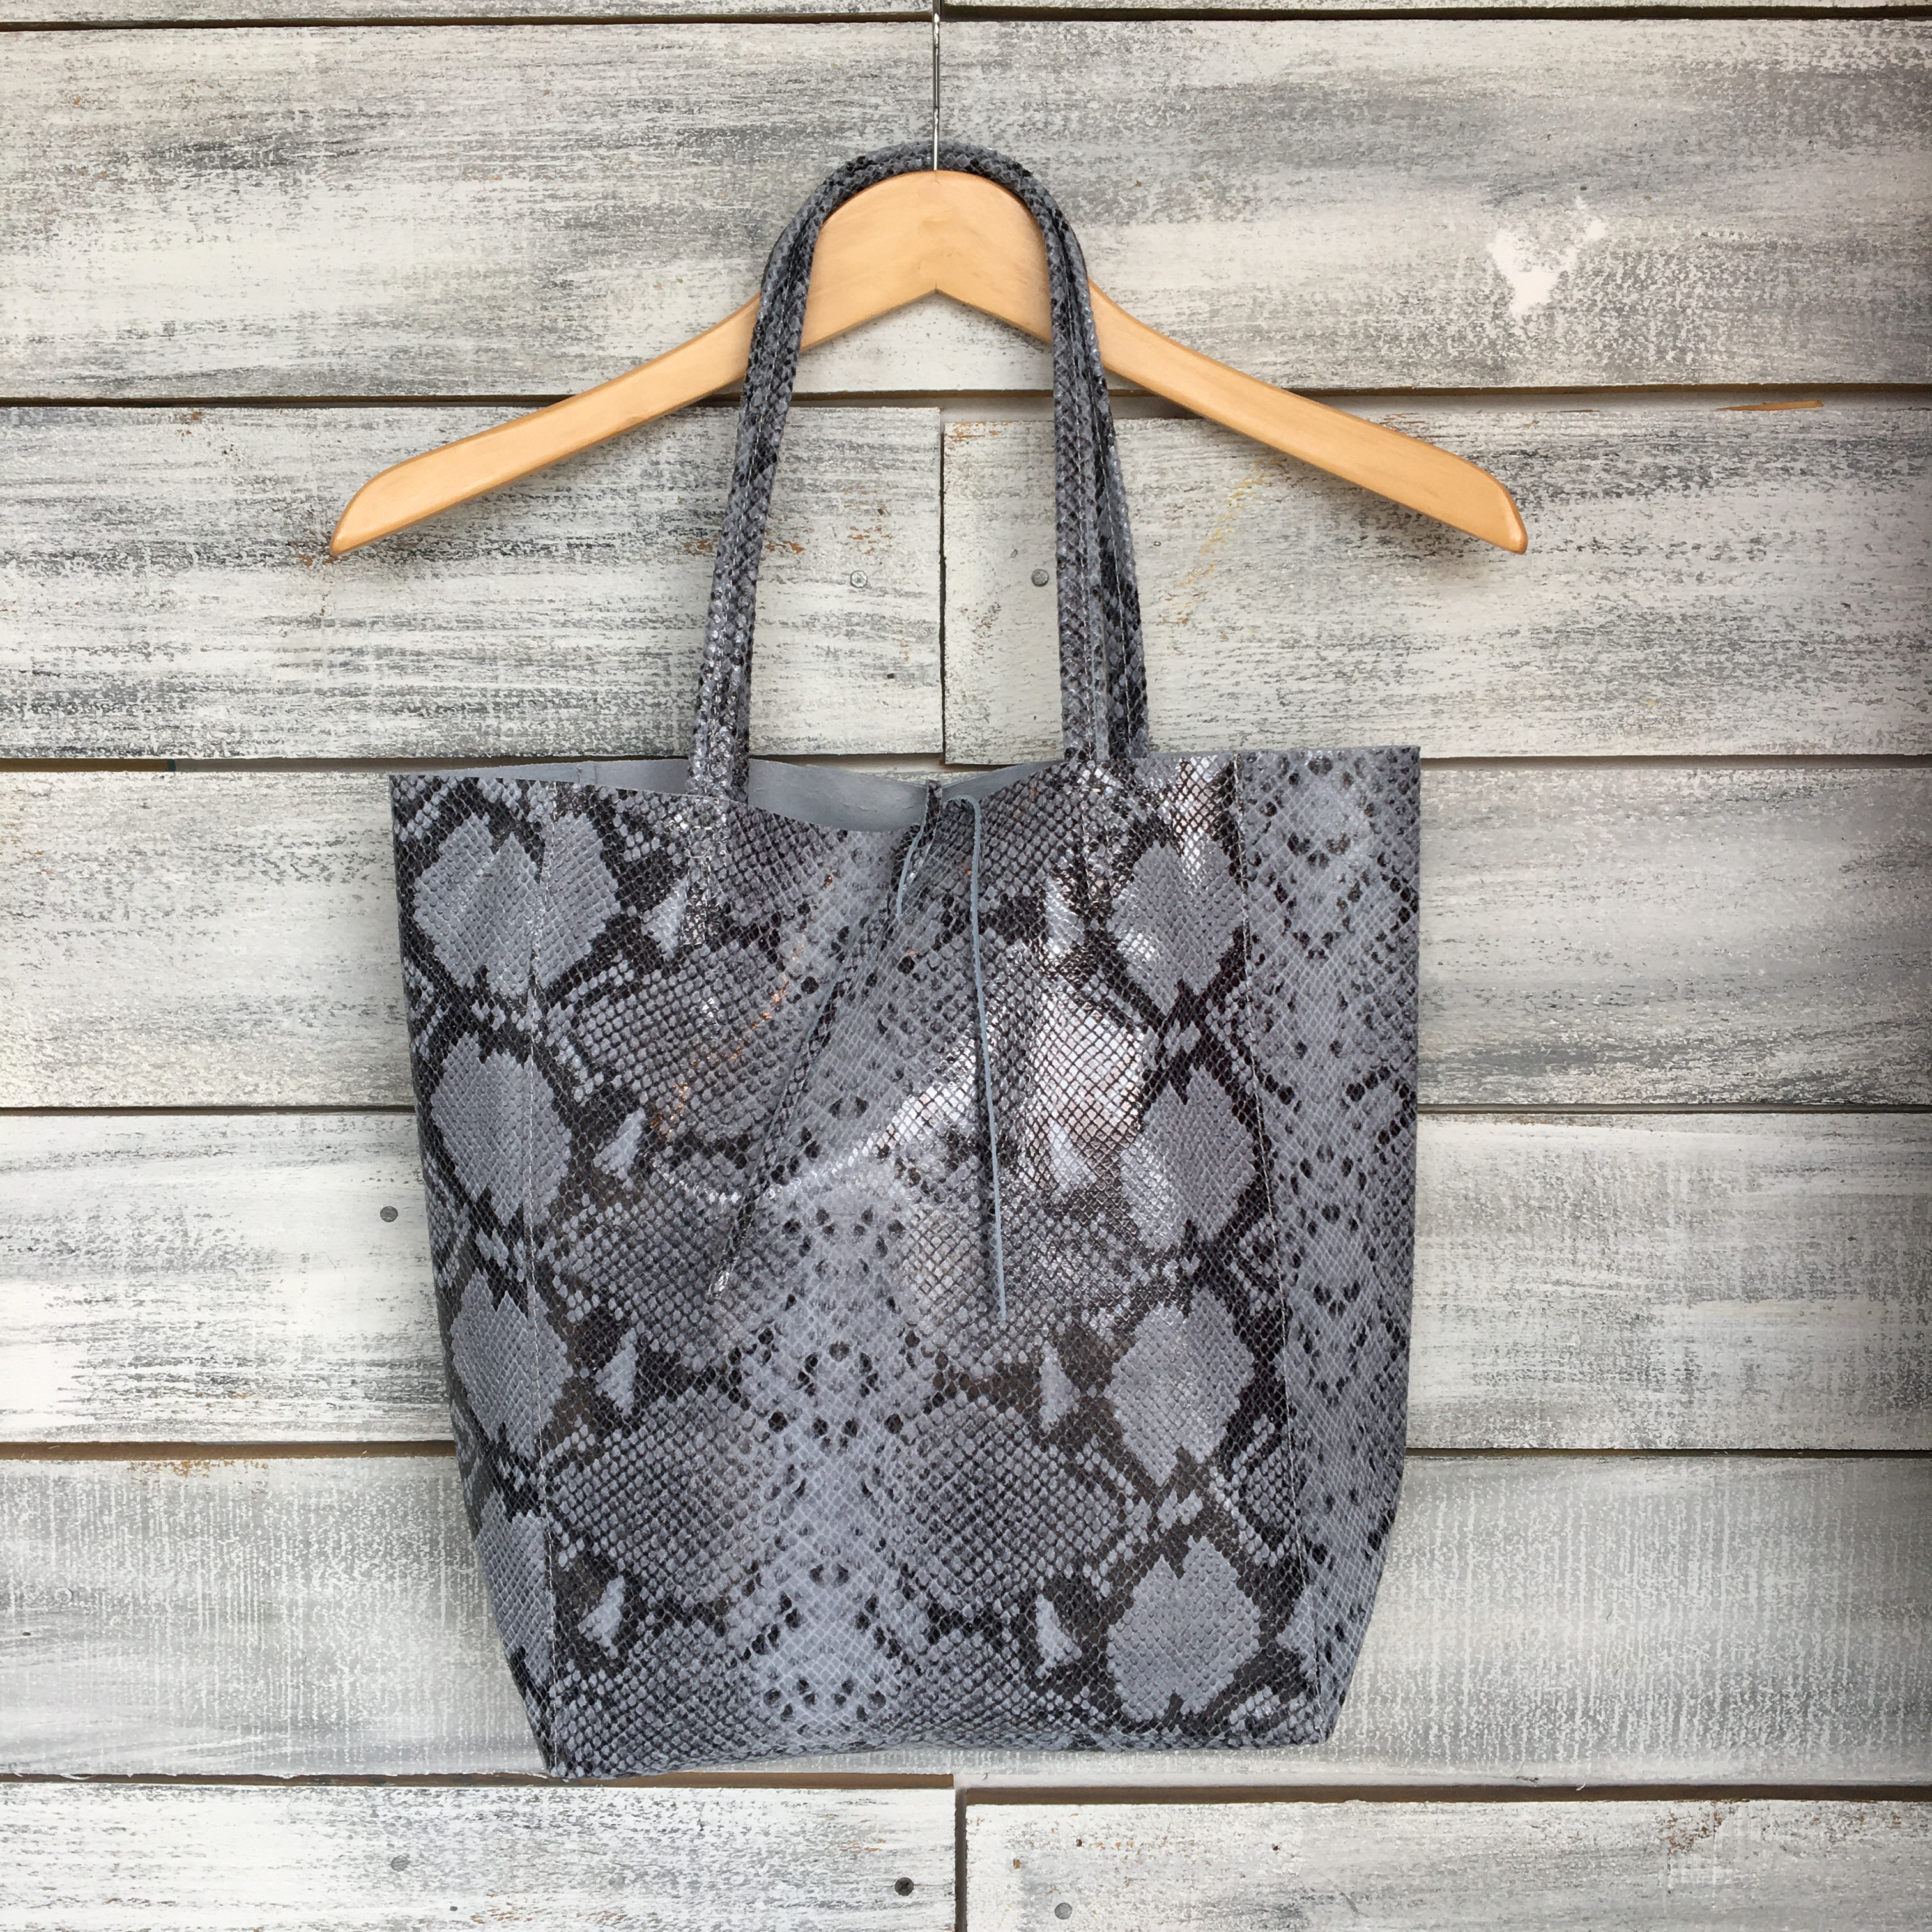 SNAKE PRINT LEATHER TOTE – SHOP THE LOOK